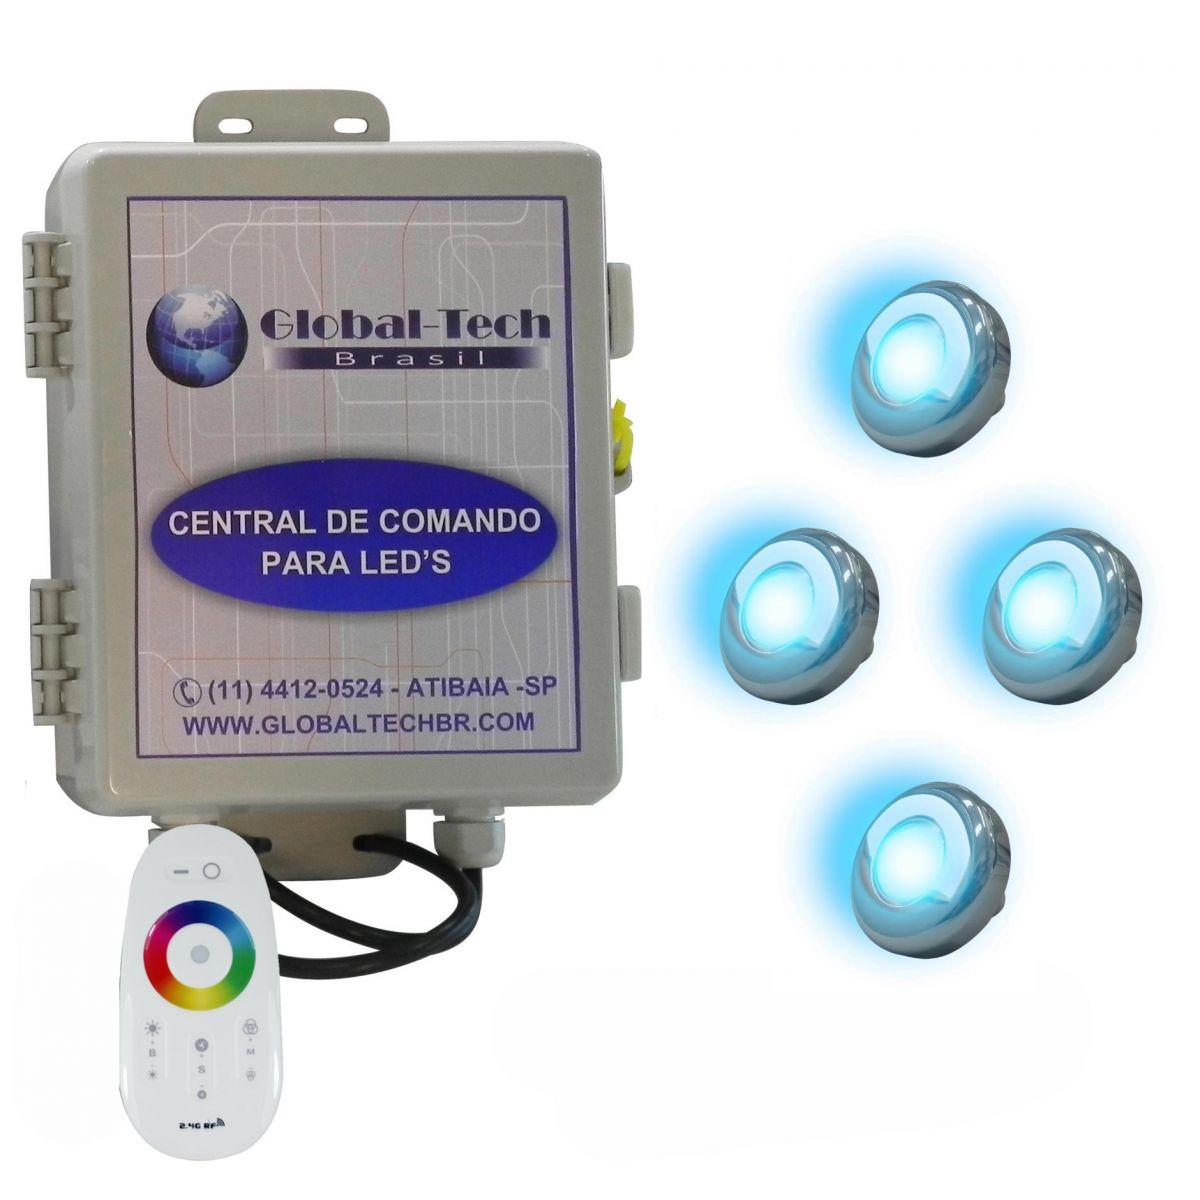 Led piscina kit 4 powerled inox rgb central controle for Kit de piscina